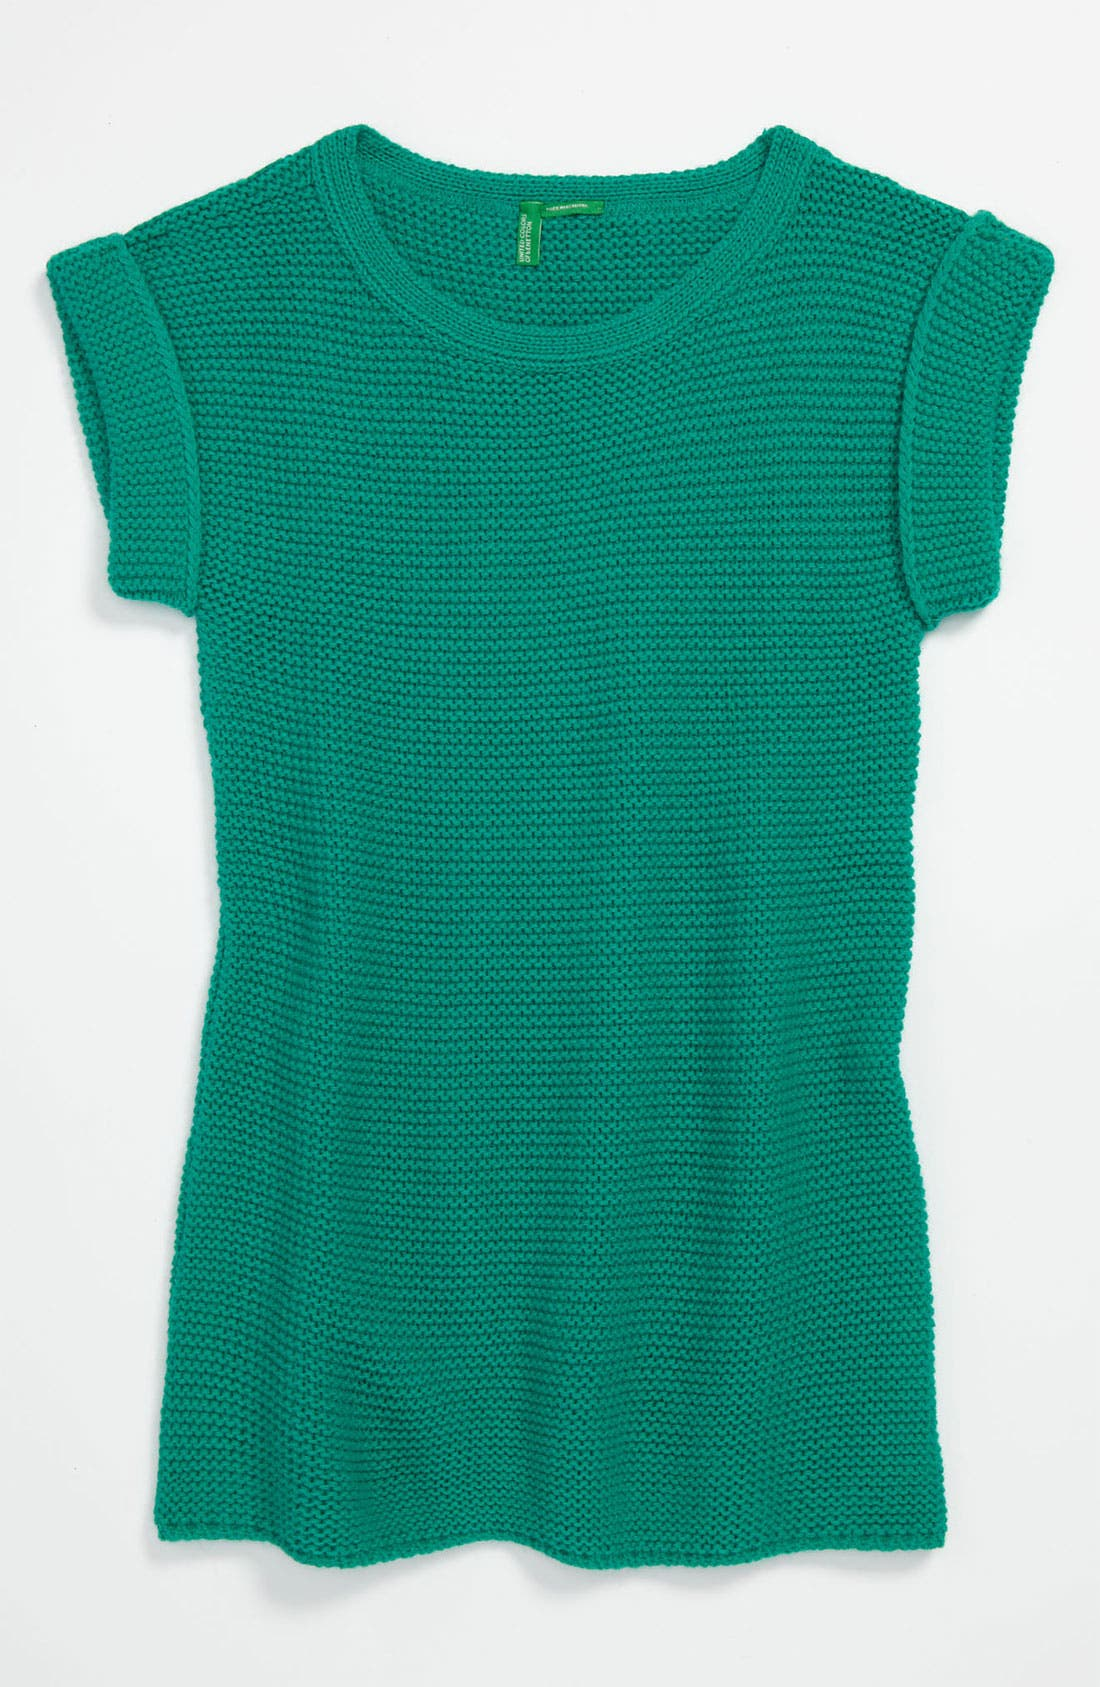 Main Image - United Colors of Benetton Kids Sweater Dress (Little Girls & Big Girls)